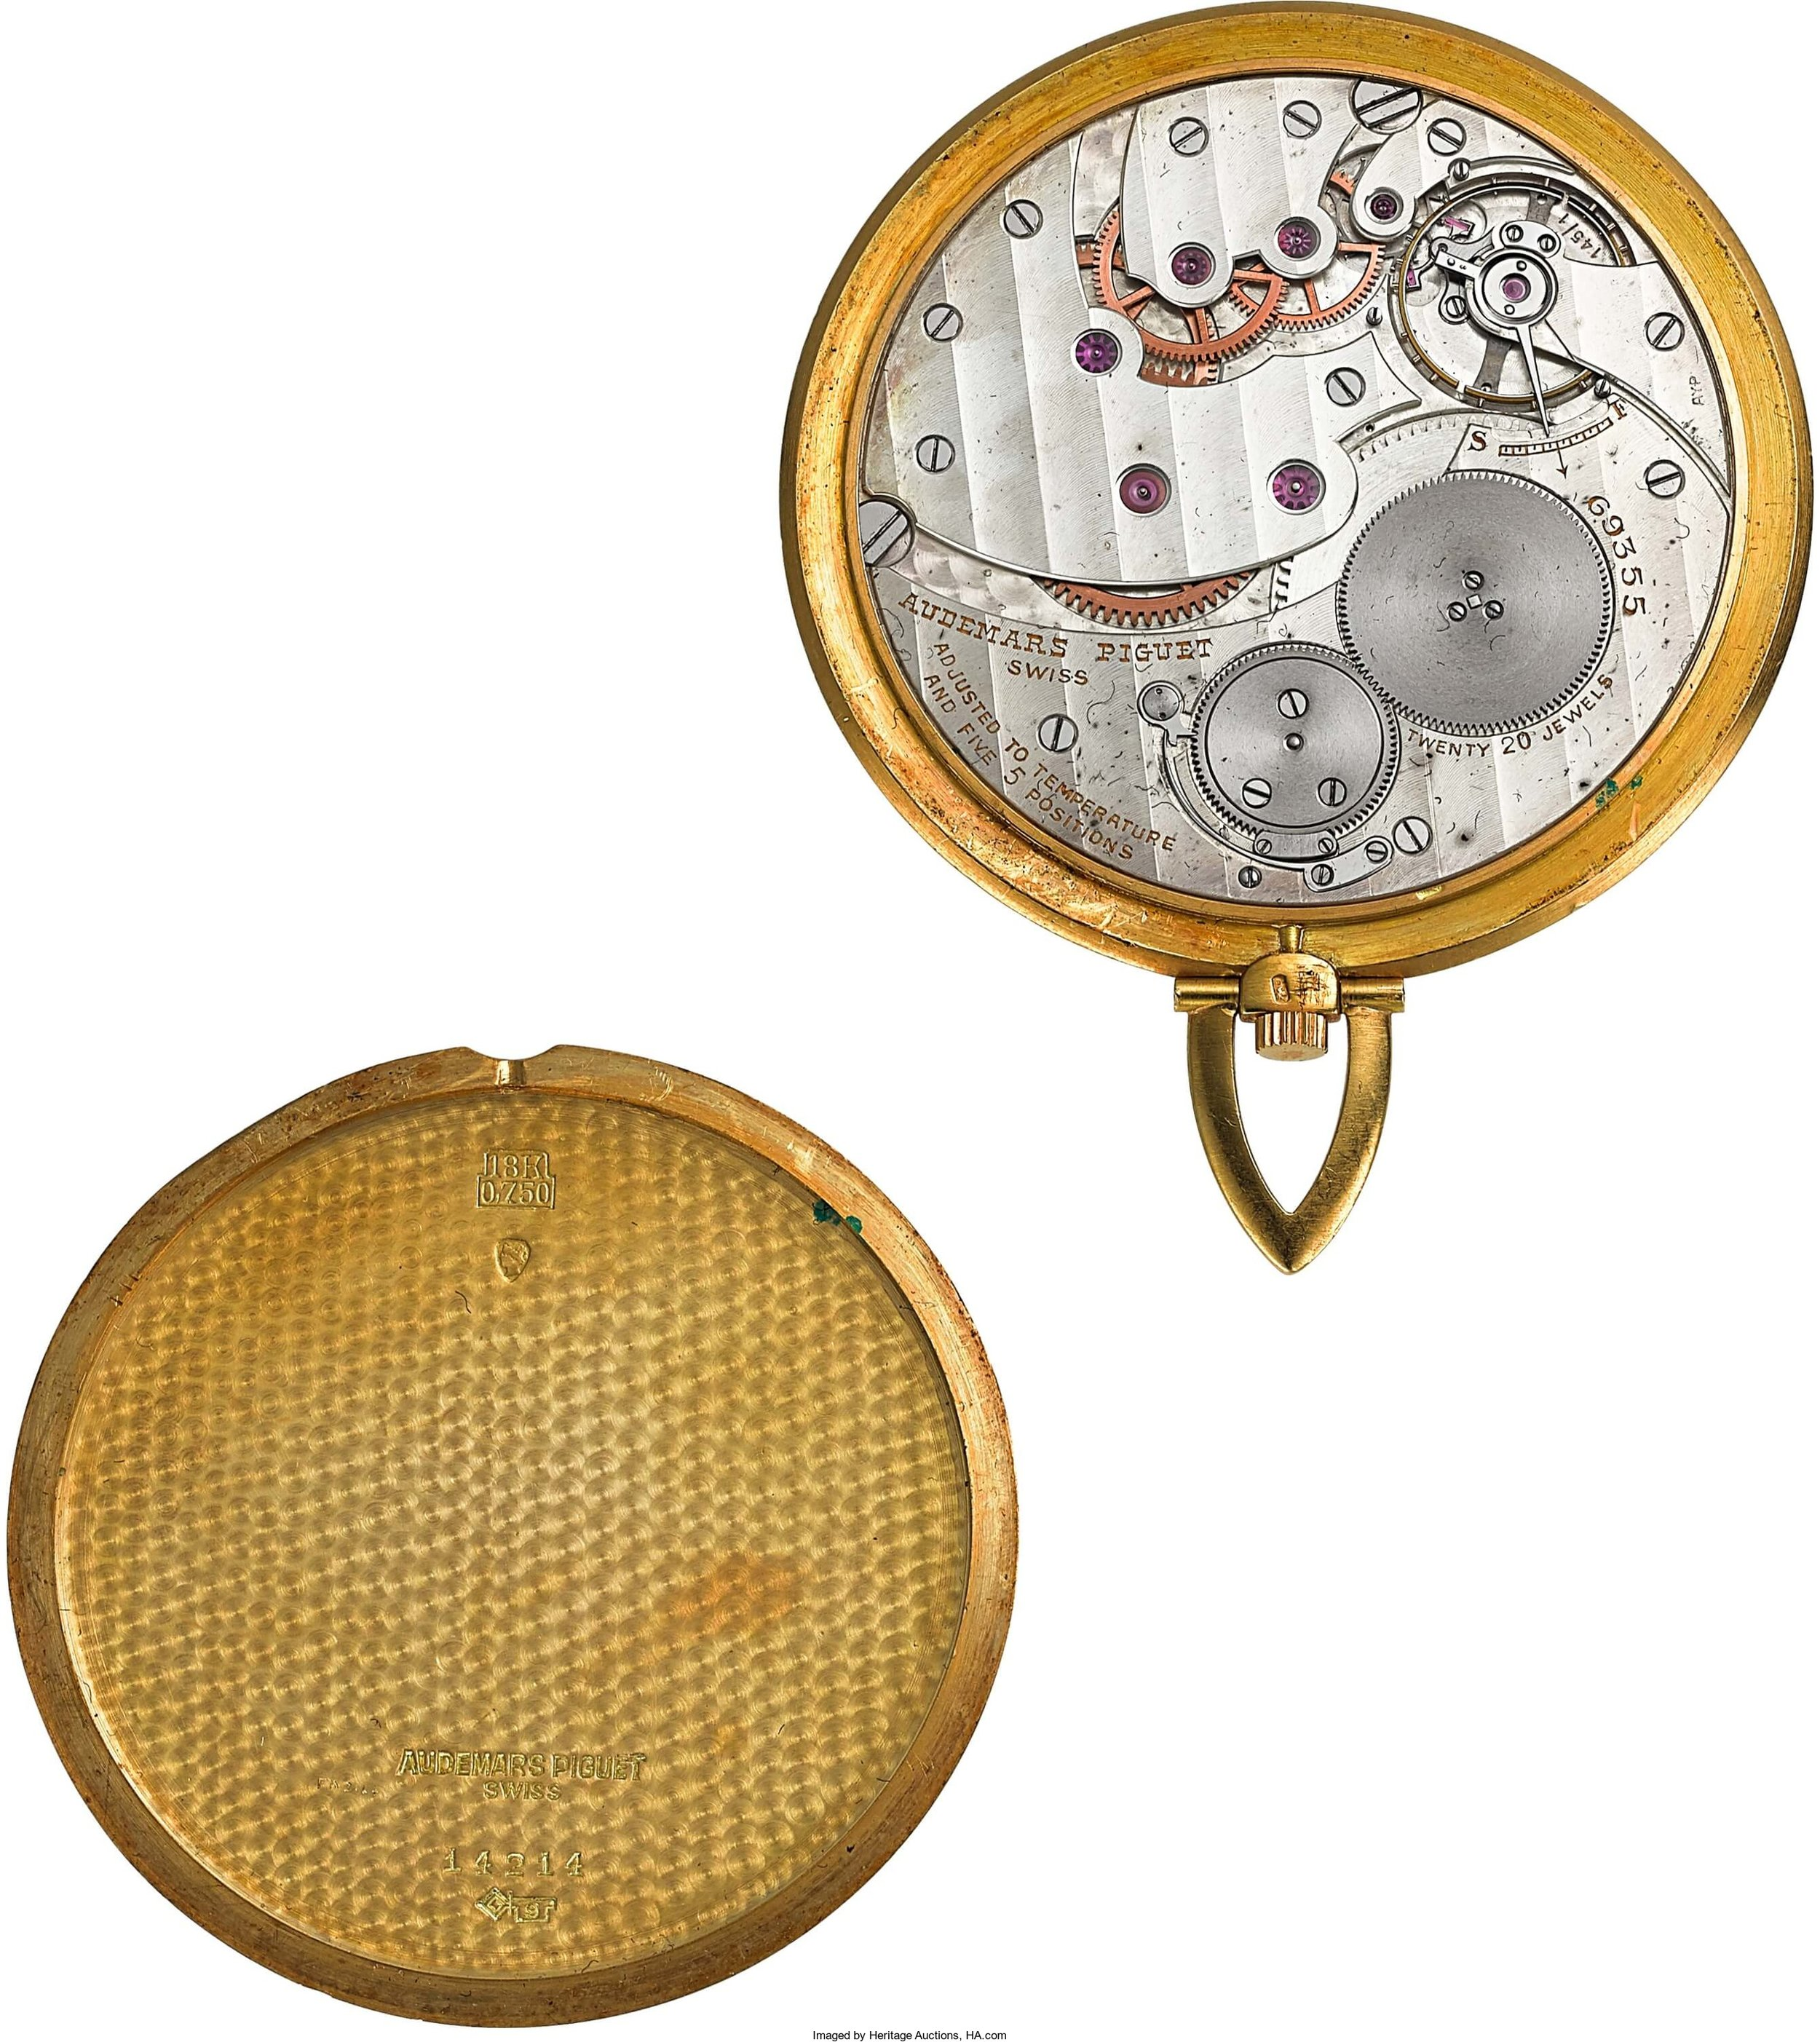 Audemars Piguet 18K Gold Ultra-Thin Pocket Watch Signed Tiffany & Co. Circa 1959